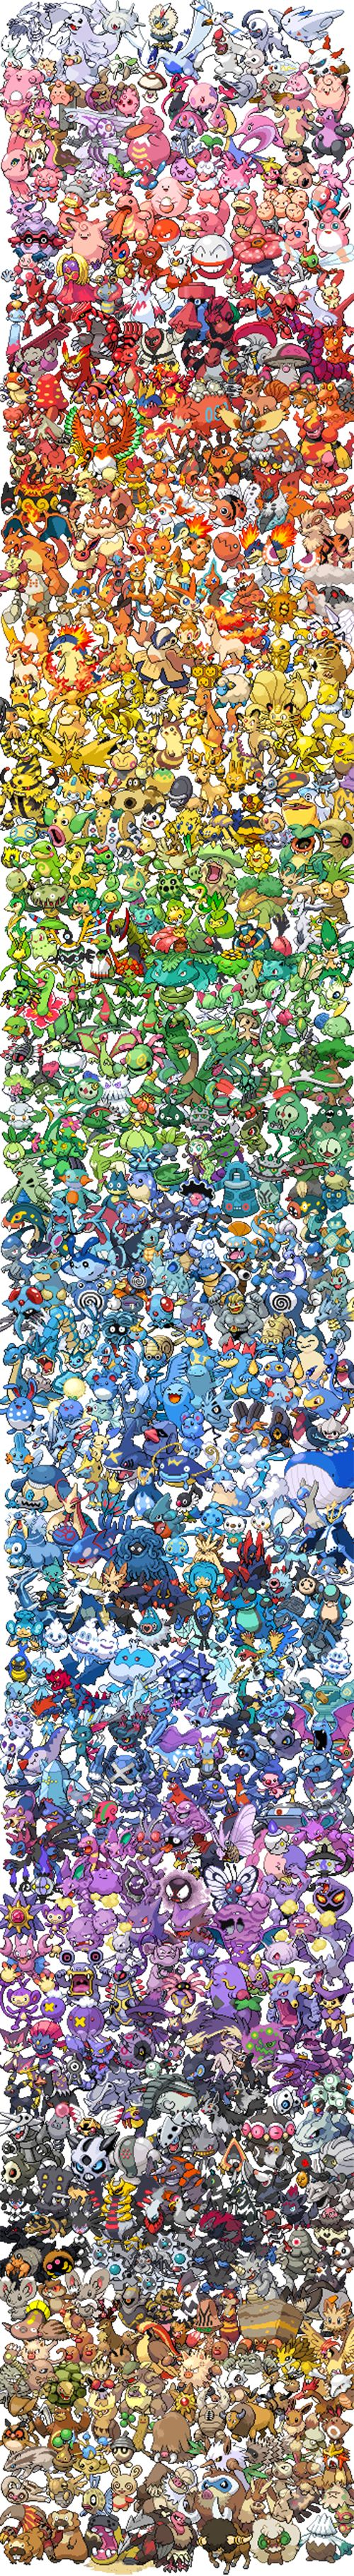 Shades of Pokémon. I'm a nerd. -D